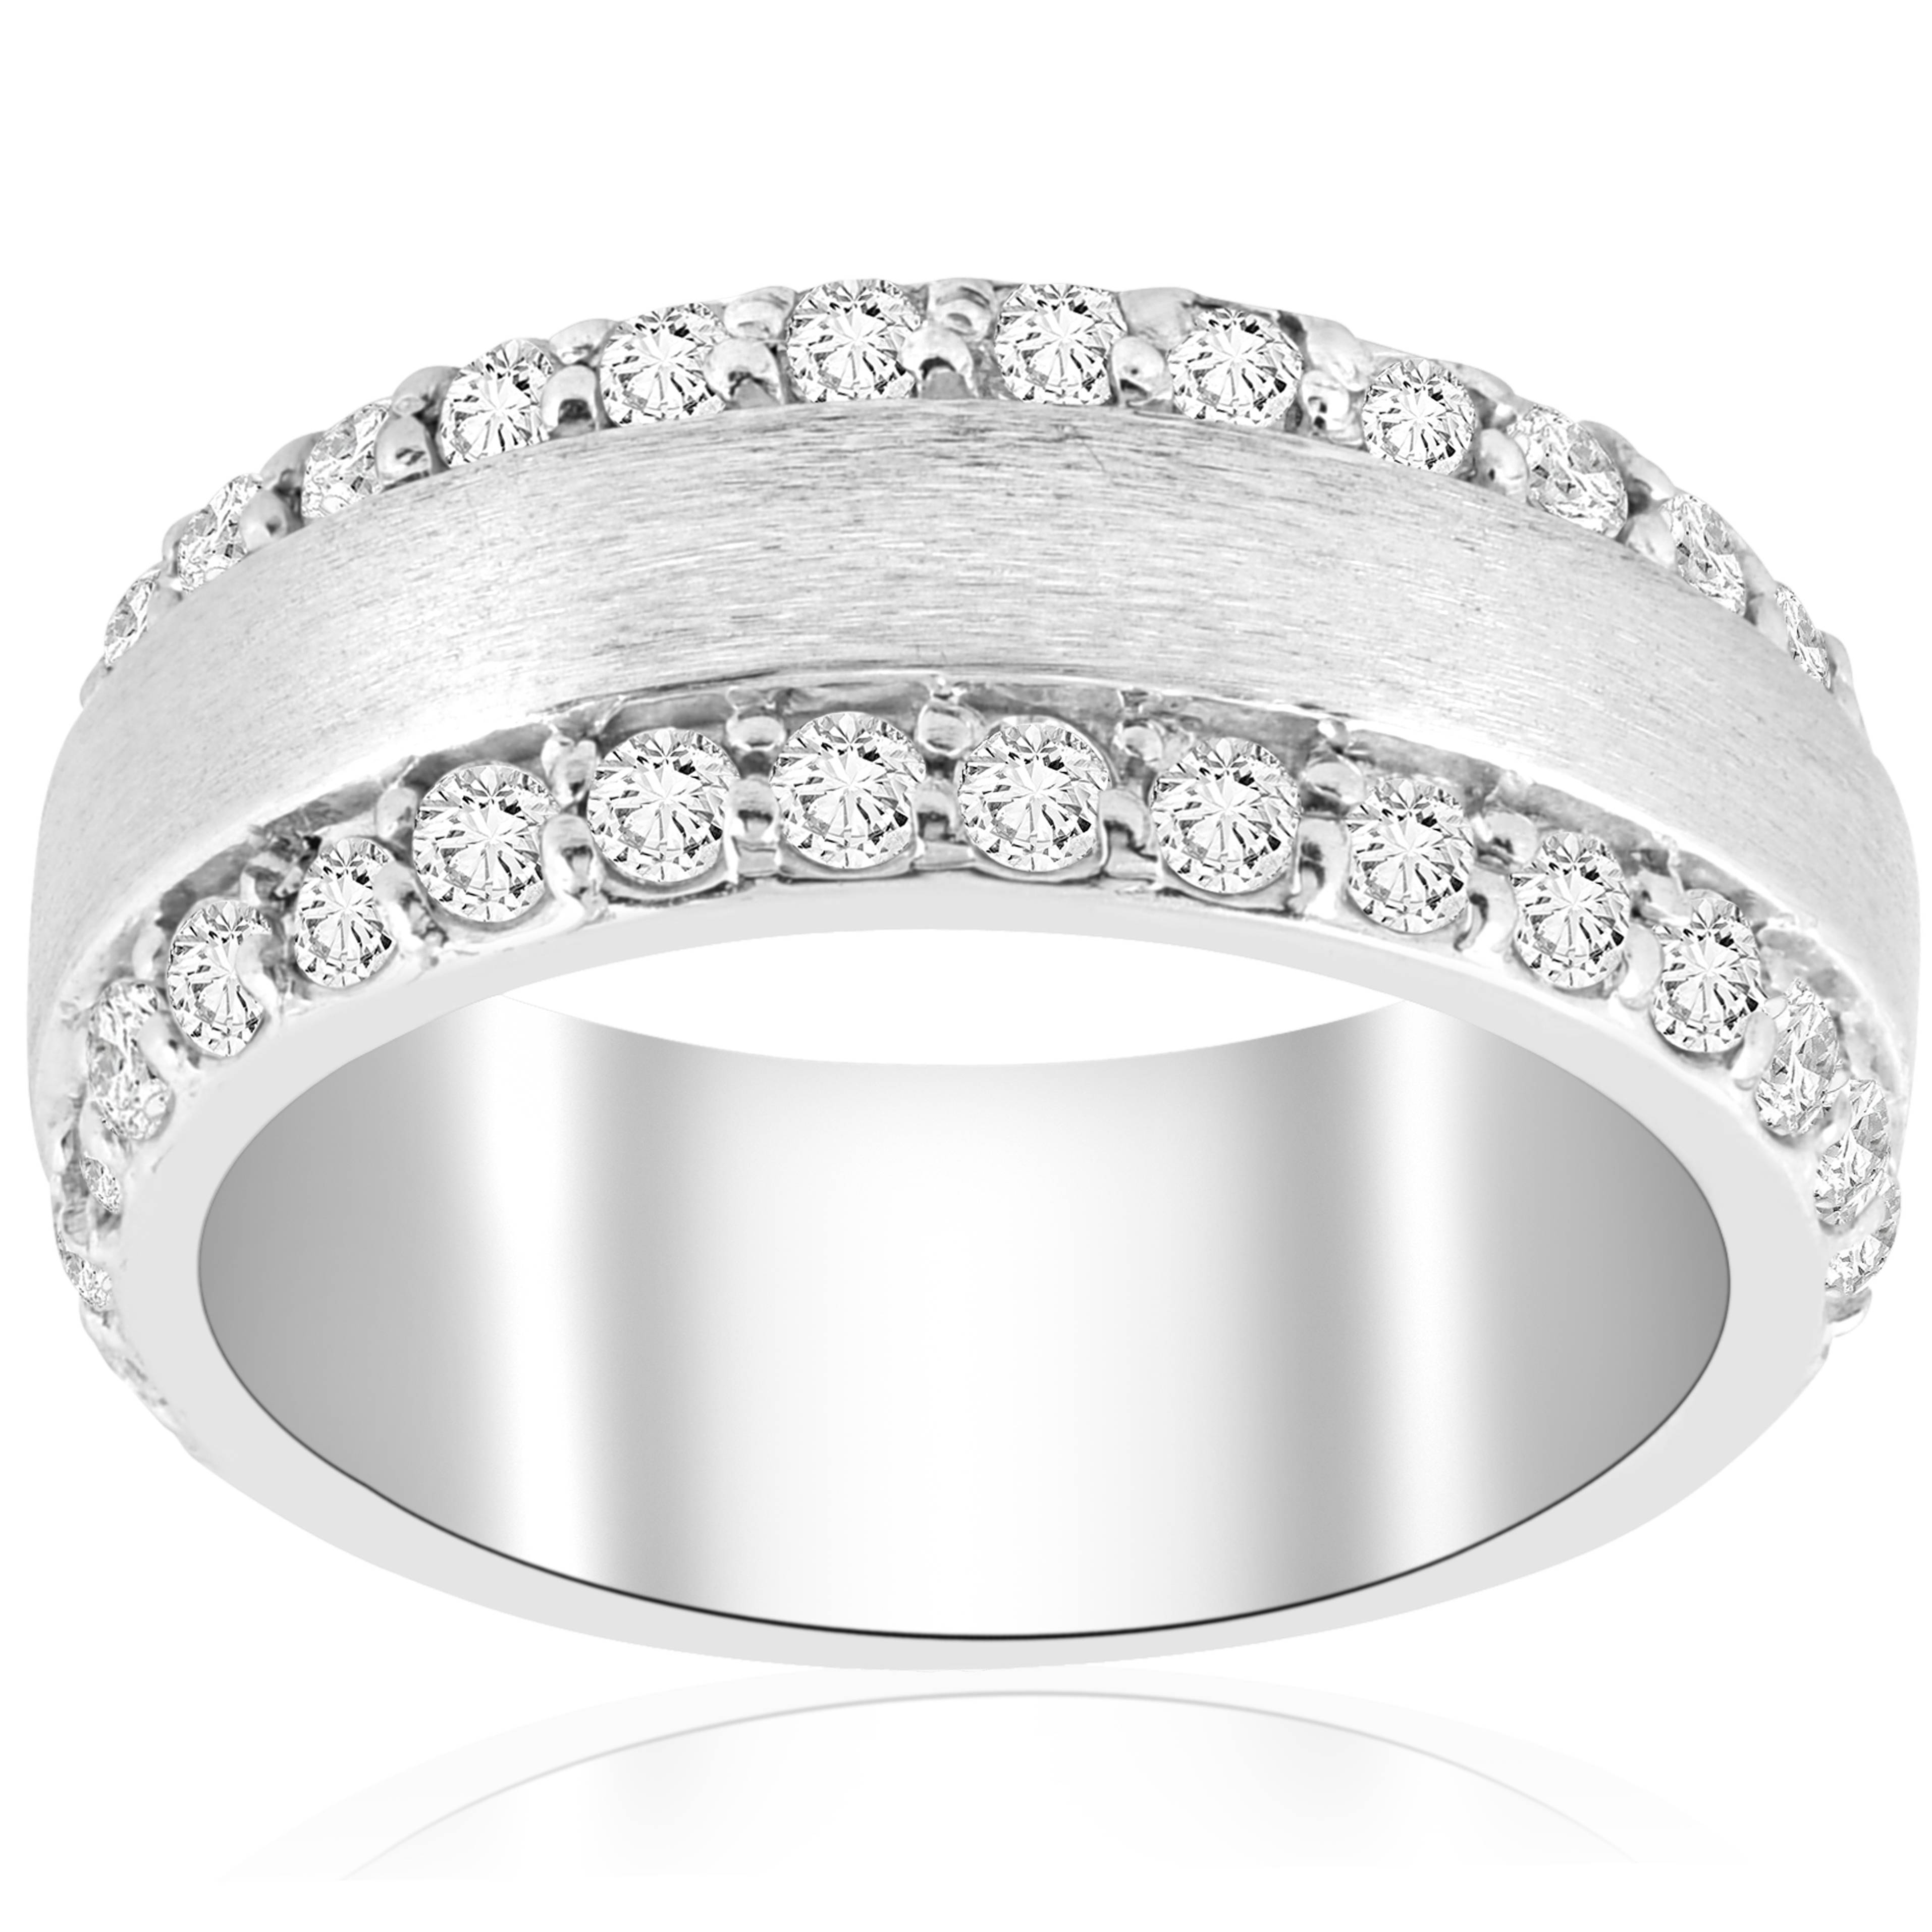 2 3/4 Ct Double Row Brushed Wide Heavy Wedding Anniversary Ring 14K White  Gold With Regard To Latest Diamond Three Row Anniversary Rings In White Gold (View 9 of 25)